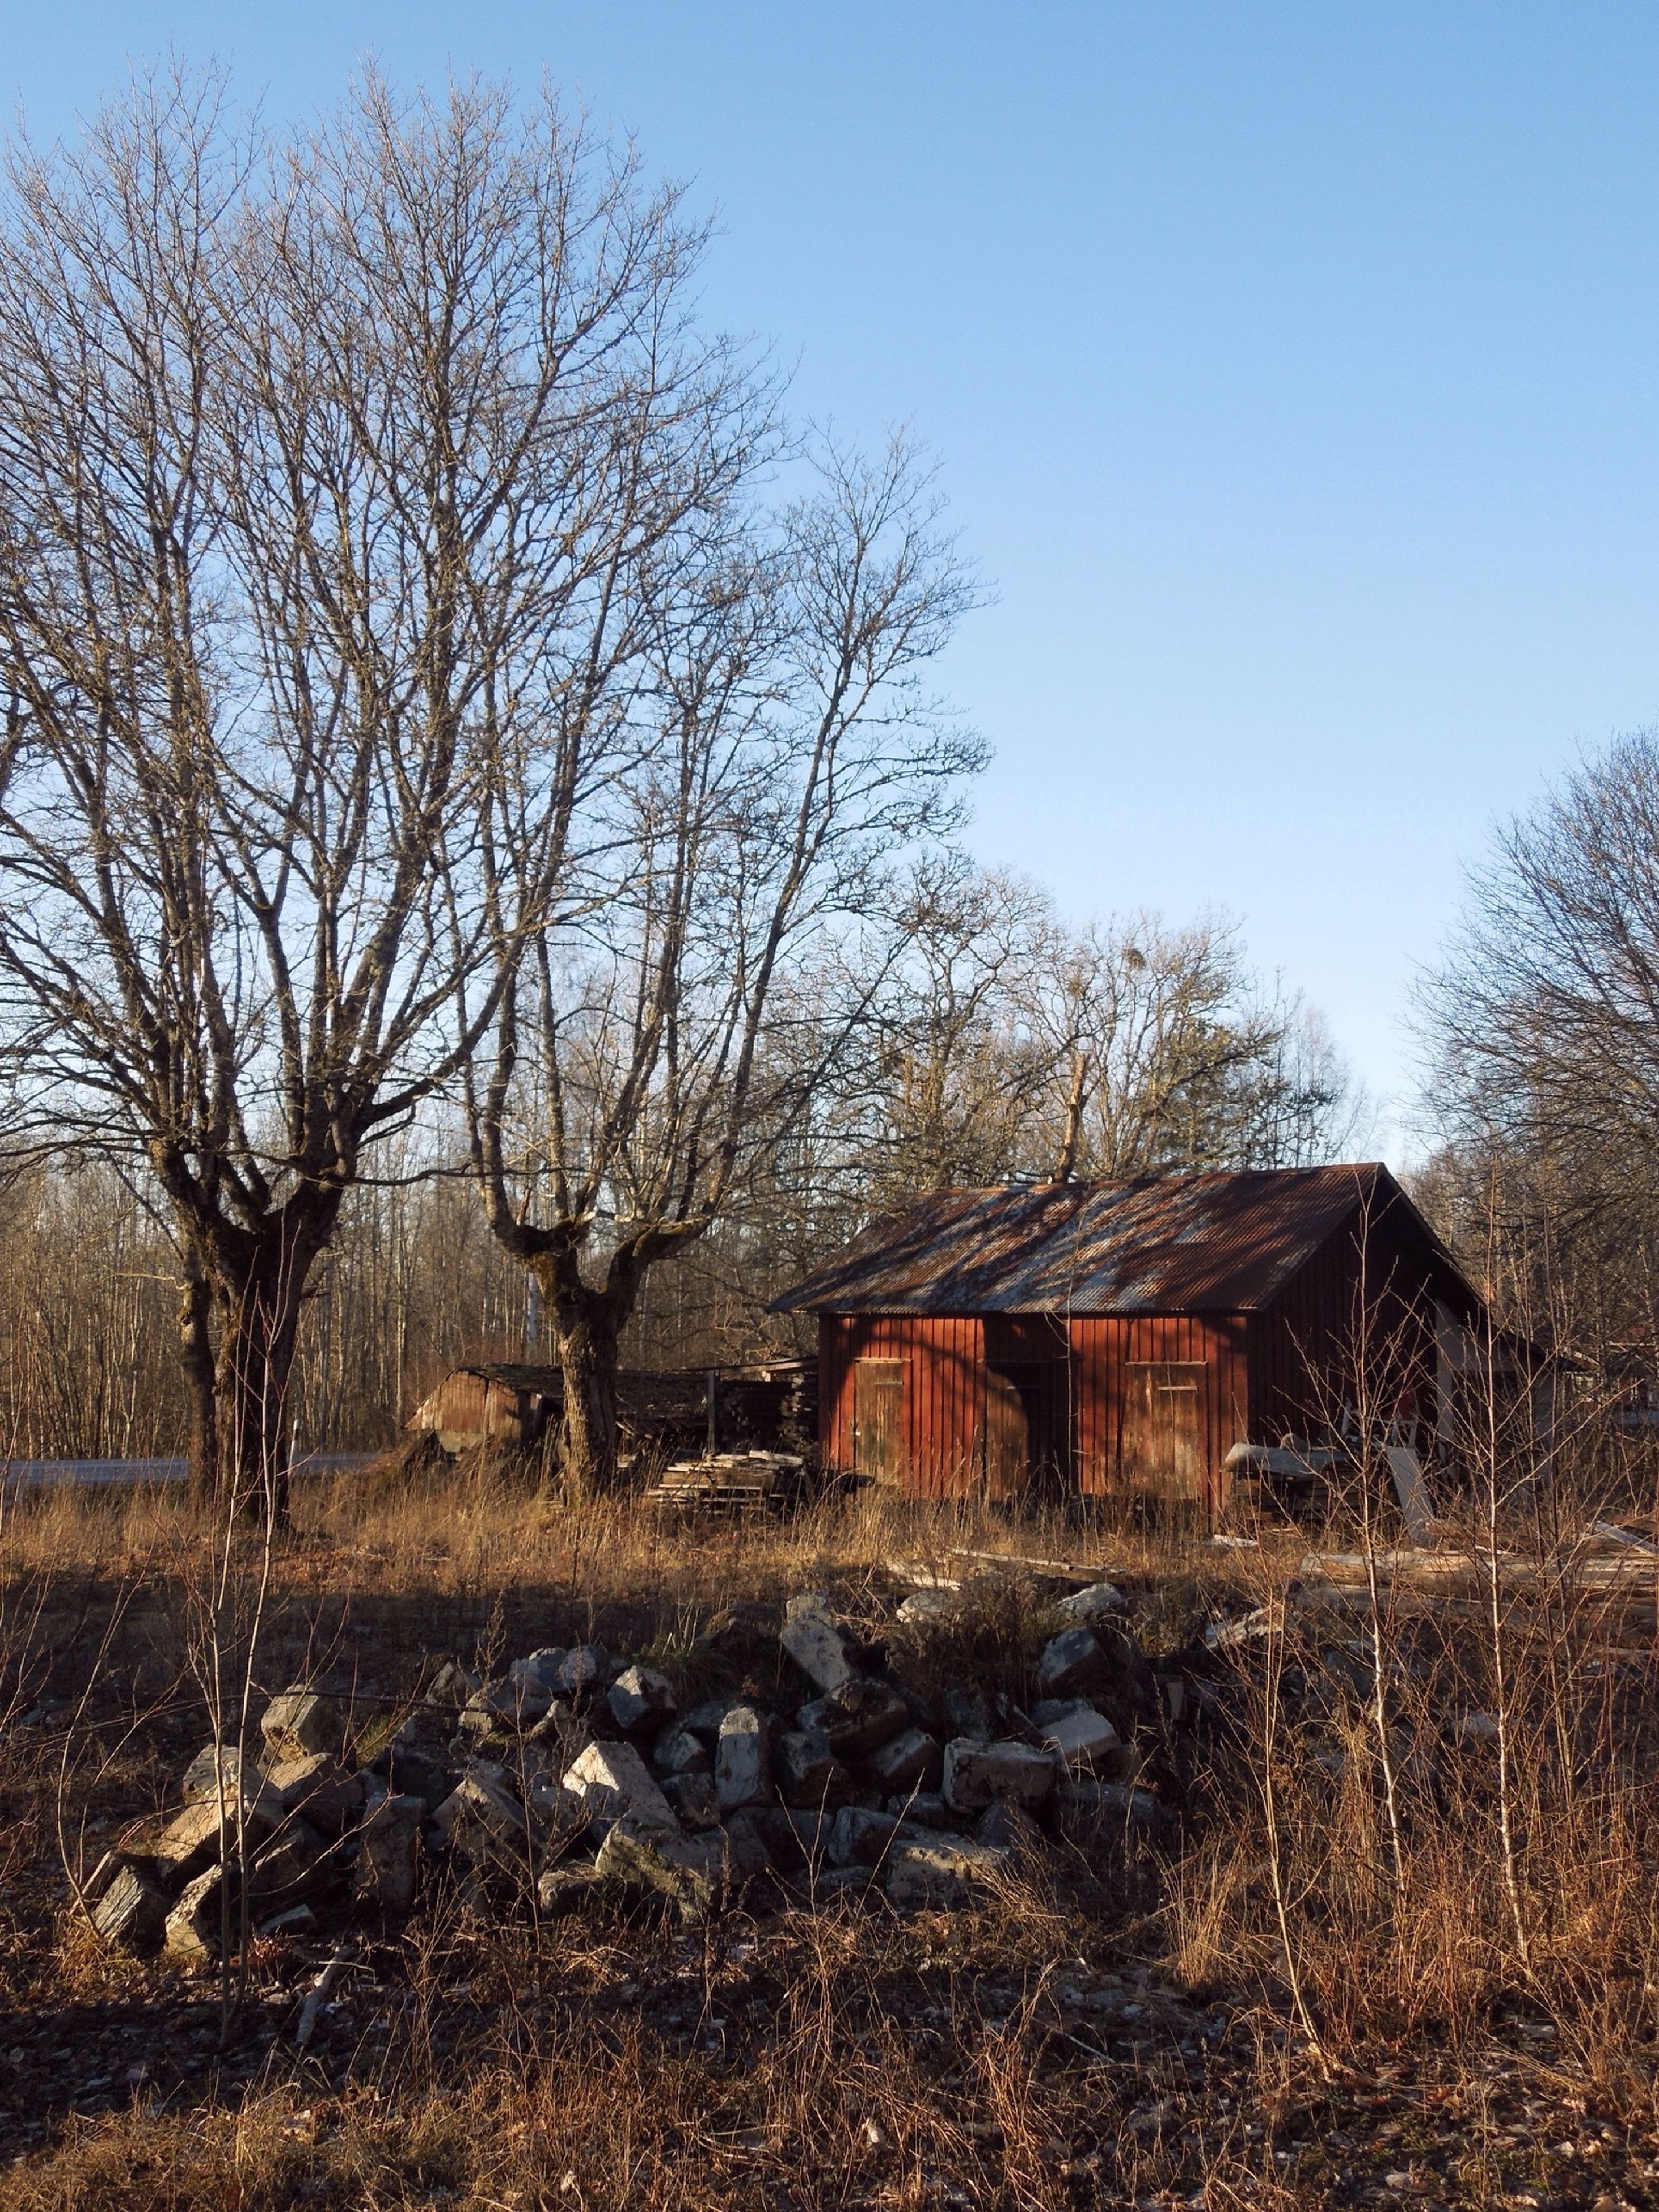 built structure, architecture, tree, building exterior, house, clear sky, bare tree, abandoned, residential structure, field, old, blue, obsolete, day, sky, branch, damaged, residential building, nature, outdoors